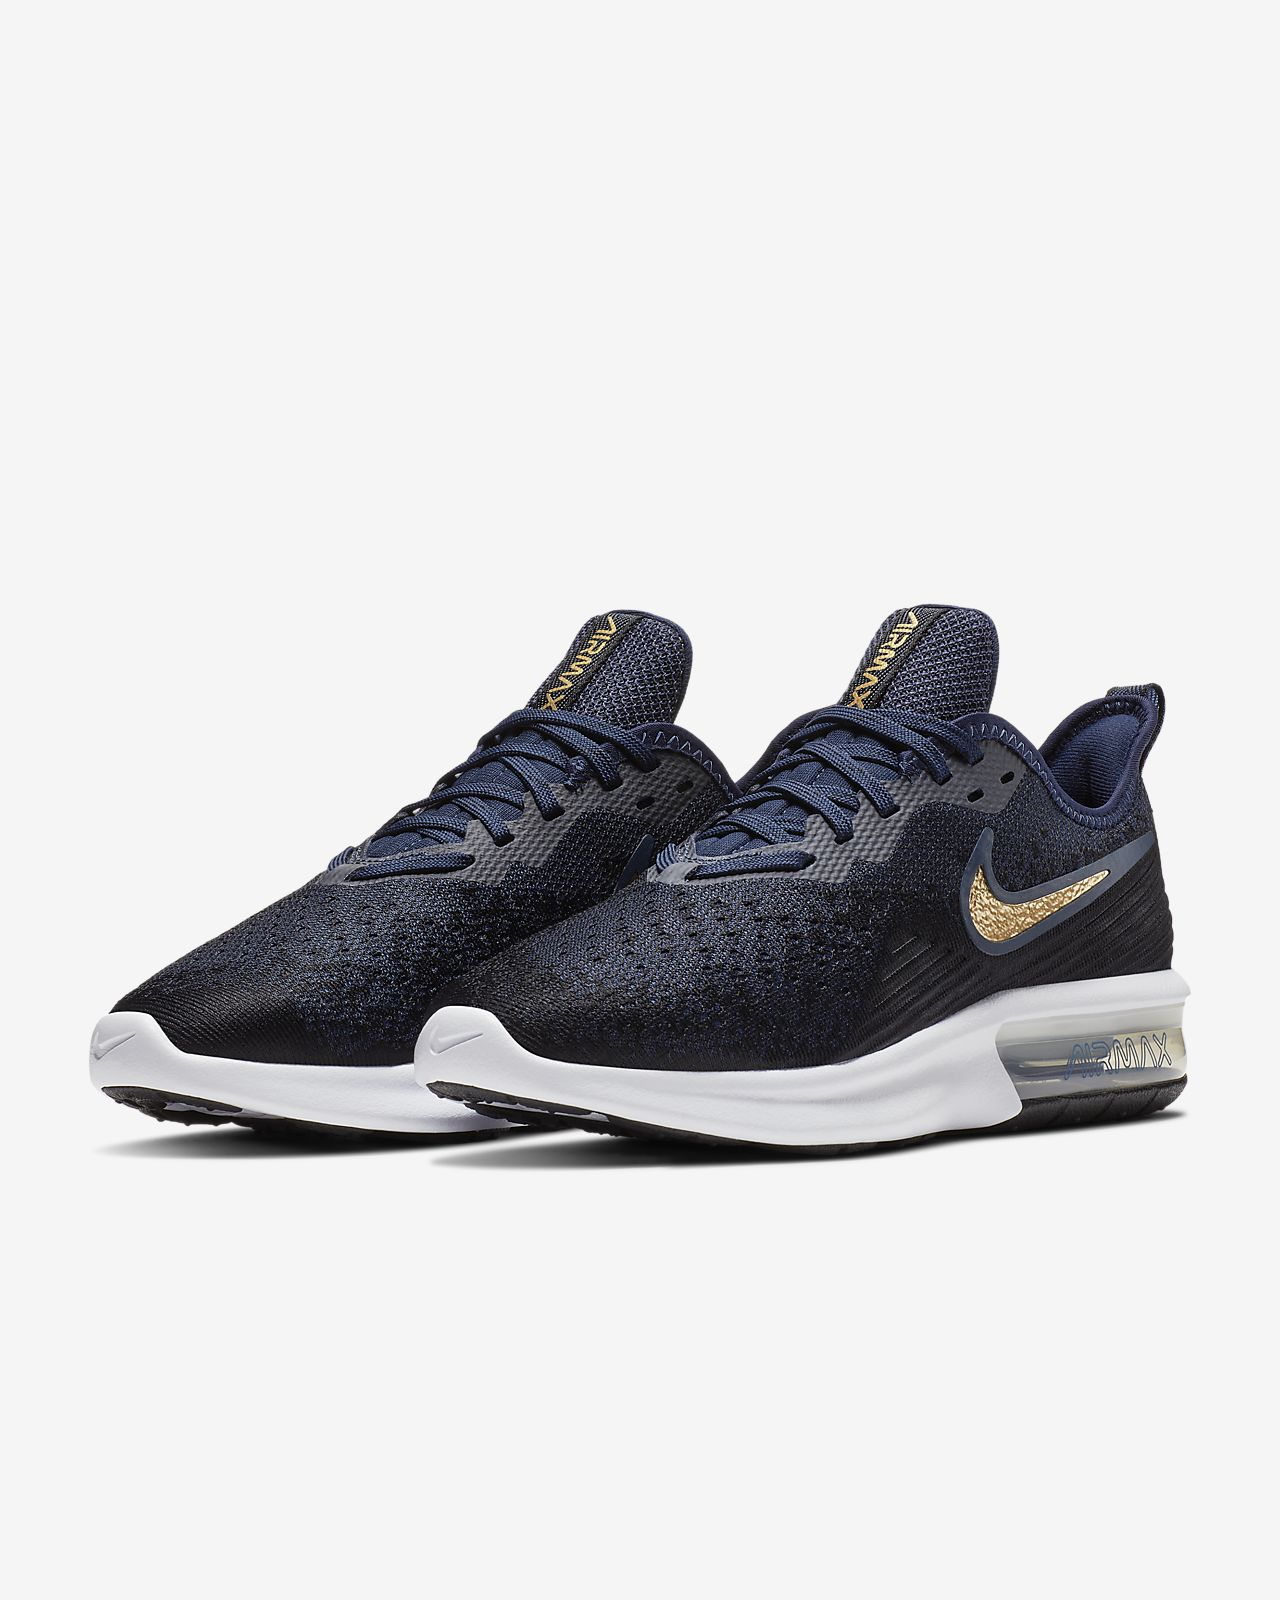 100395f8921 Low Resolution Nike Air Max Sequent 4 Women s Shoe Nike Air Max Sequent 4 Women s  Shoe